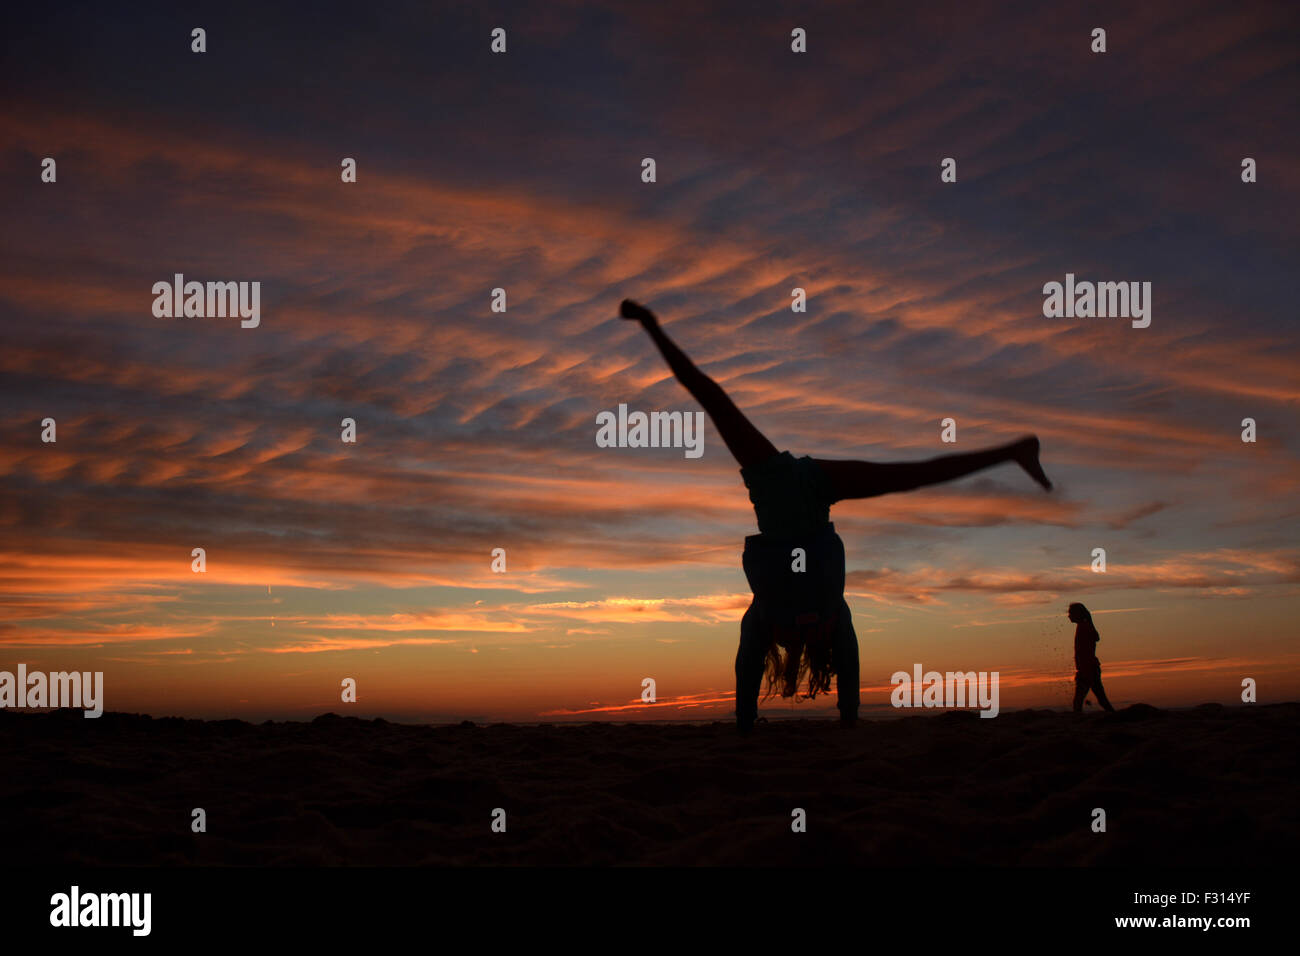 Children silhouette as they jump and enjoy the sunset - Stock Image